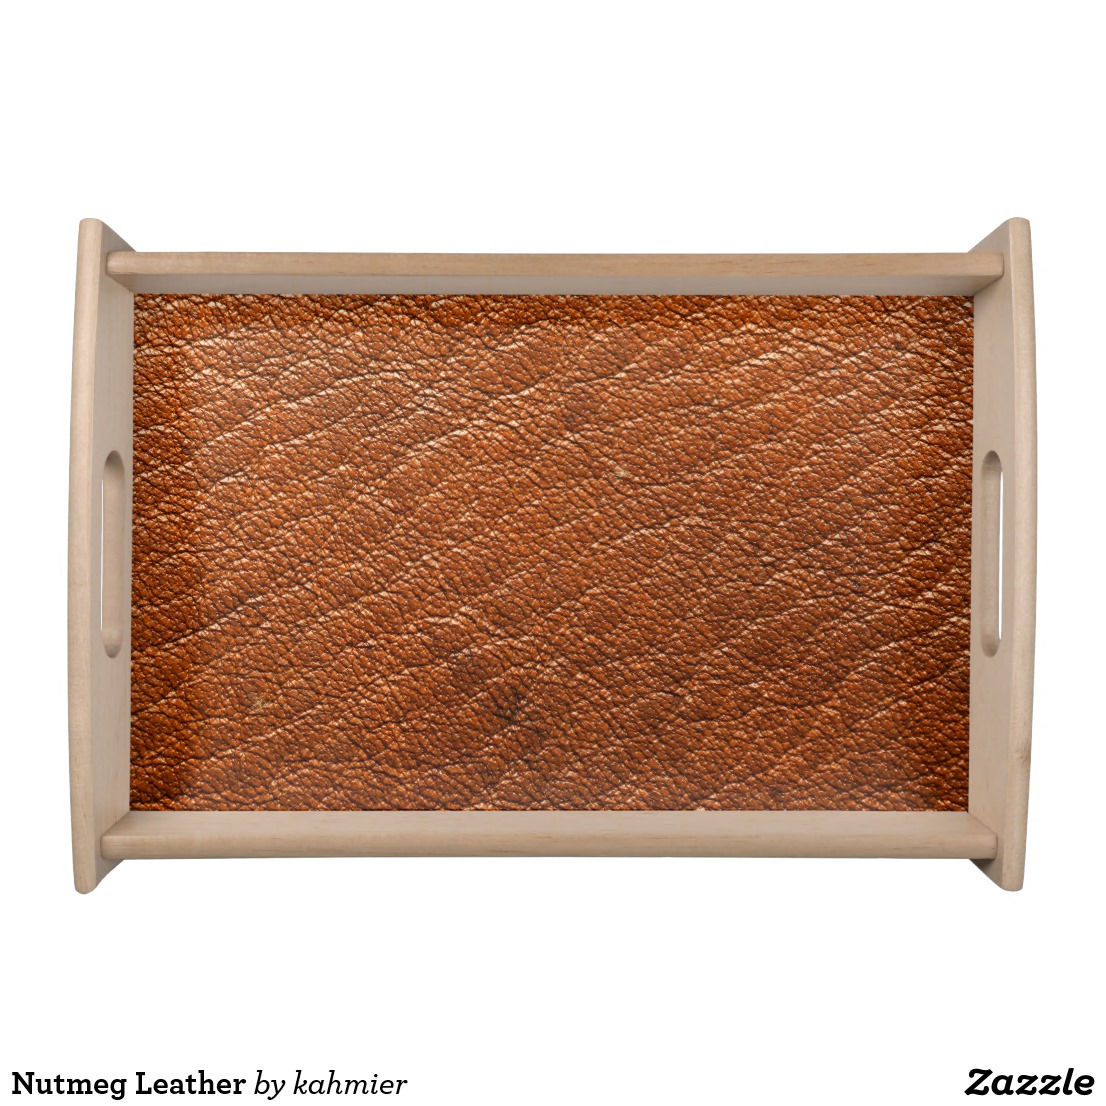 Nutmeg Leather Serving Tray